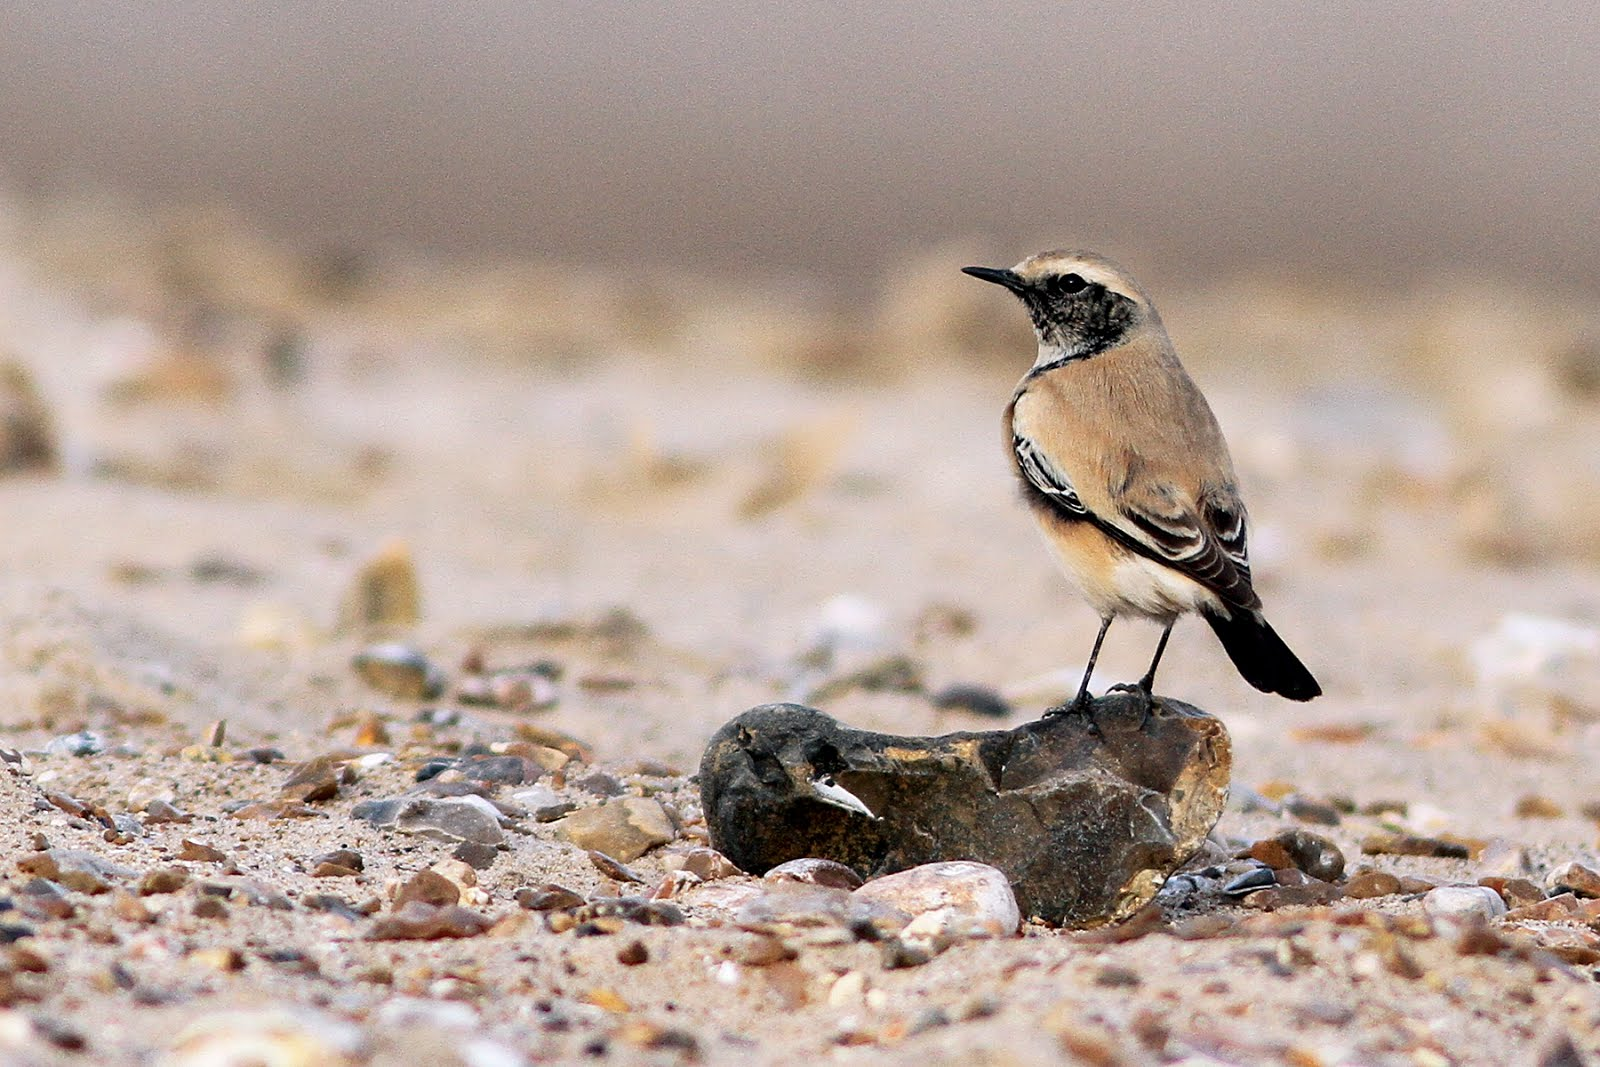 DESERT WHEATEAR